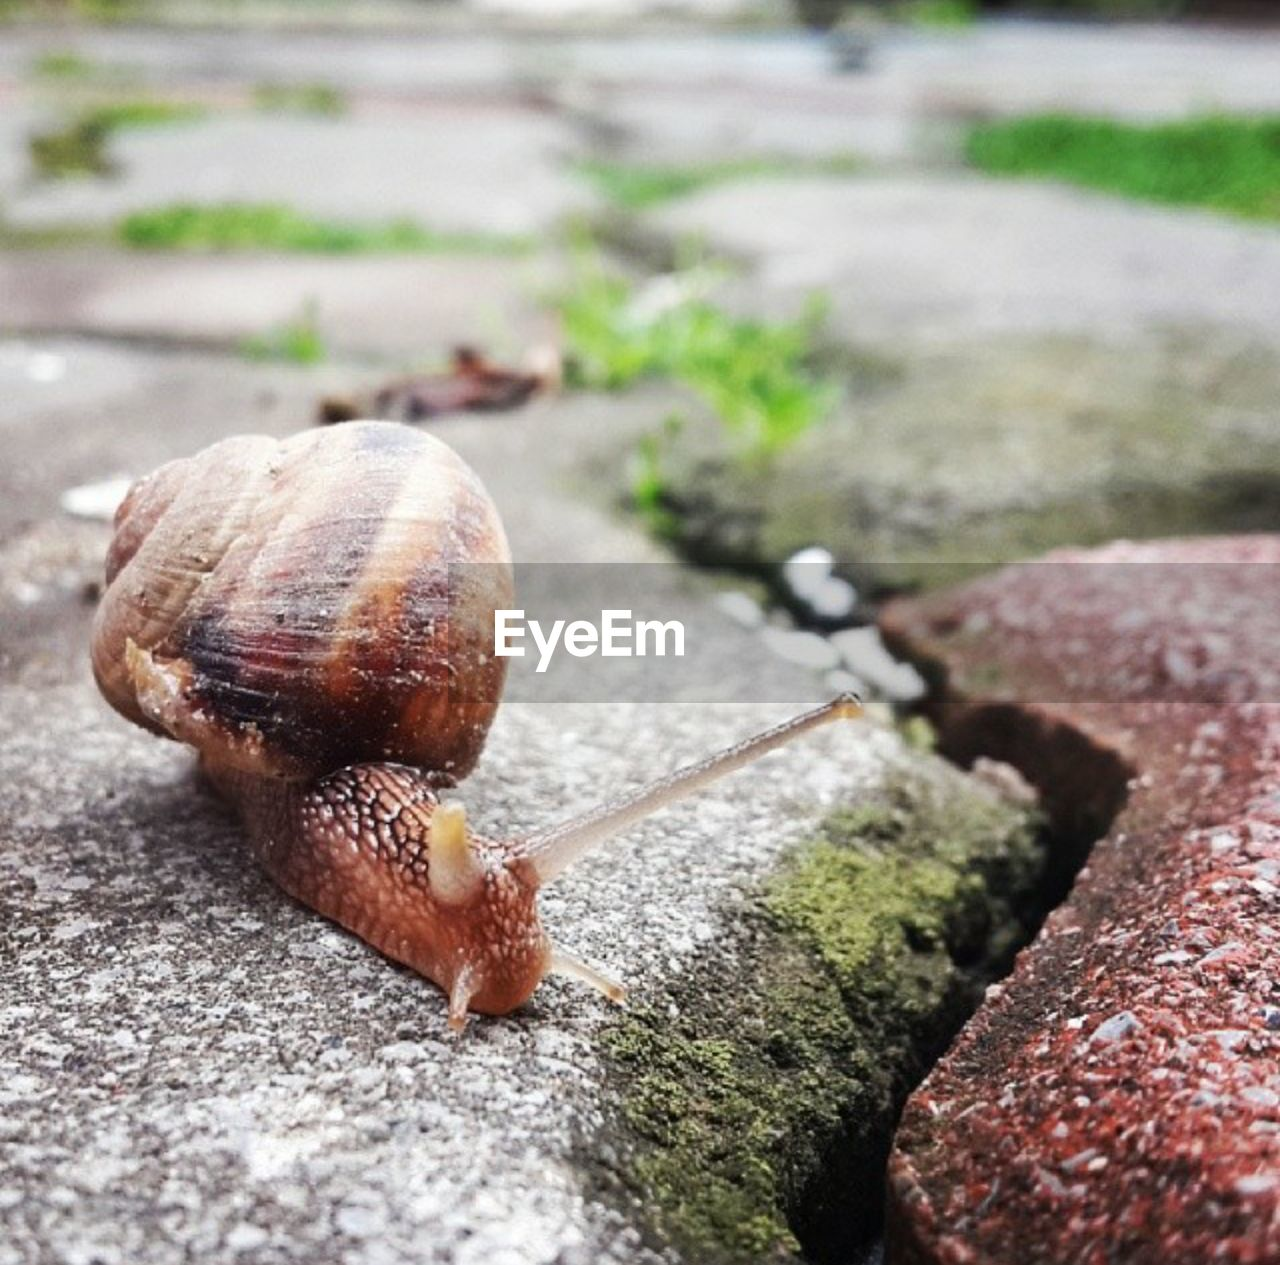 mollusk, gastropod, snail, animal, close-up, shell, animal themes, animal wildlife, animal shell, invertebrate, no people, animals in the wild, selective focus, day, one animal, animal antenna, nature, animal body part, outdoors, focus on foreground, crawling, small